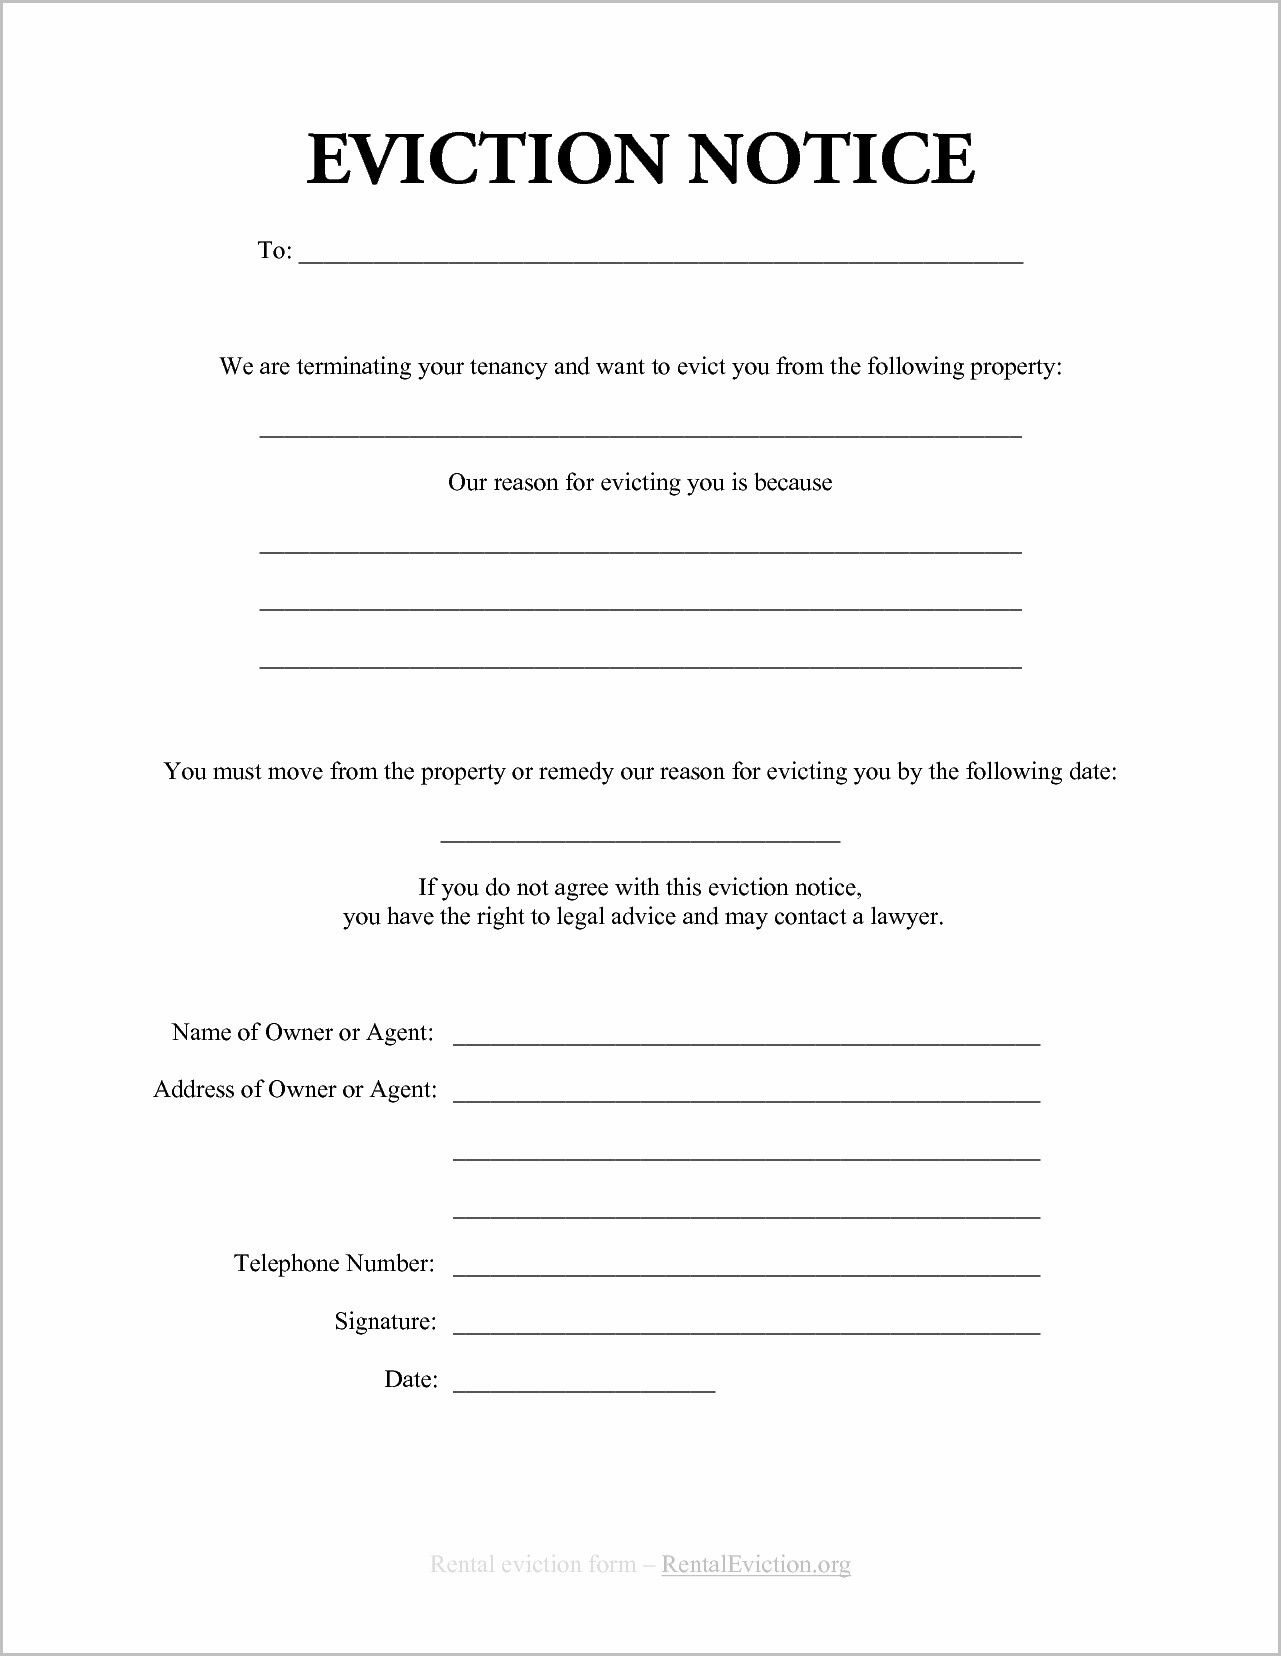 Notice Of Eviction Form Ontario   Forms   Eviction Notice, Resume - Free Printable Blank Eviction Notice